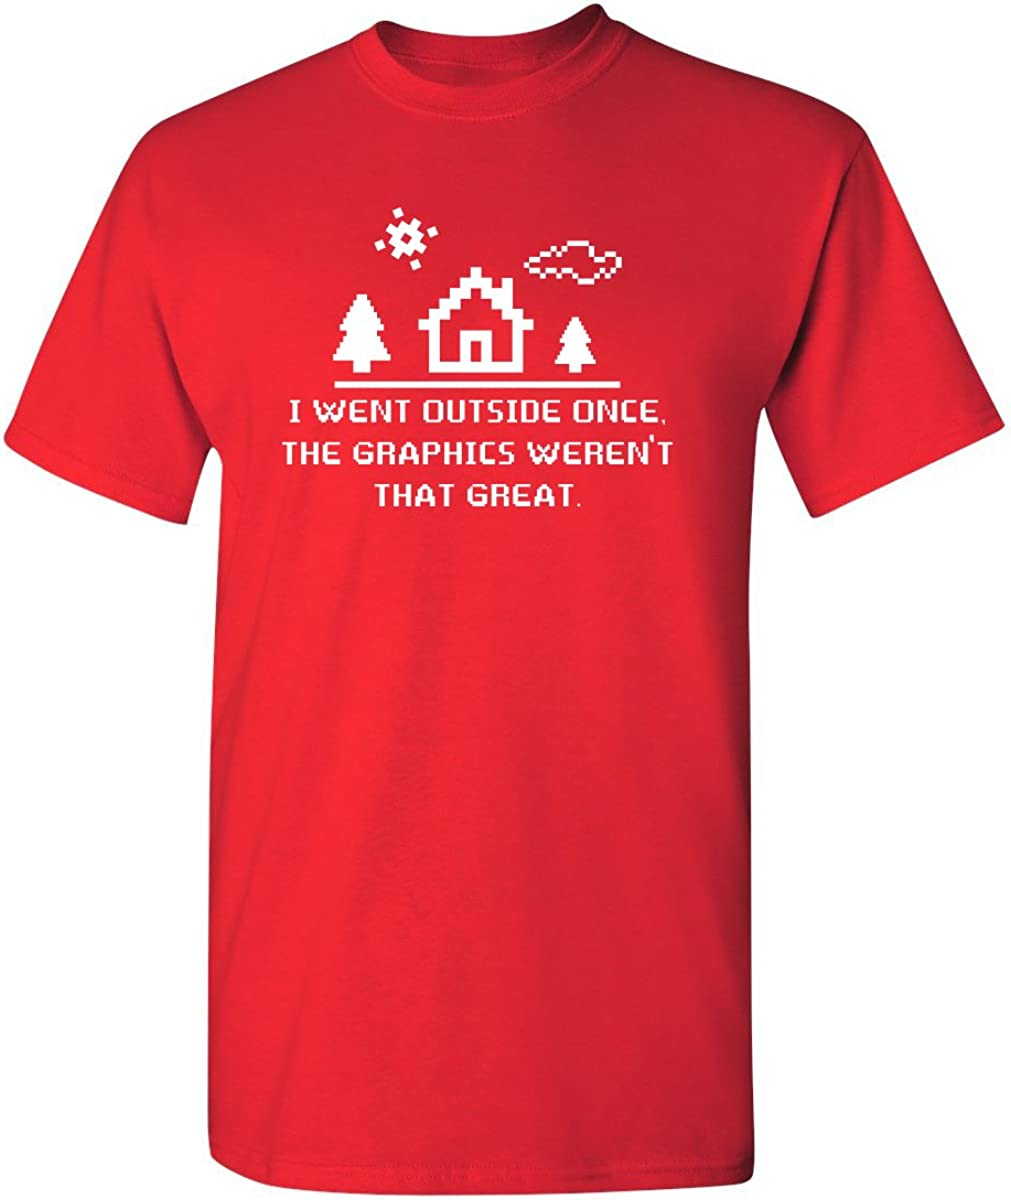 I Went Outside Once Adult Humor Graphic Novelty Sarcastic Funny T Shirt